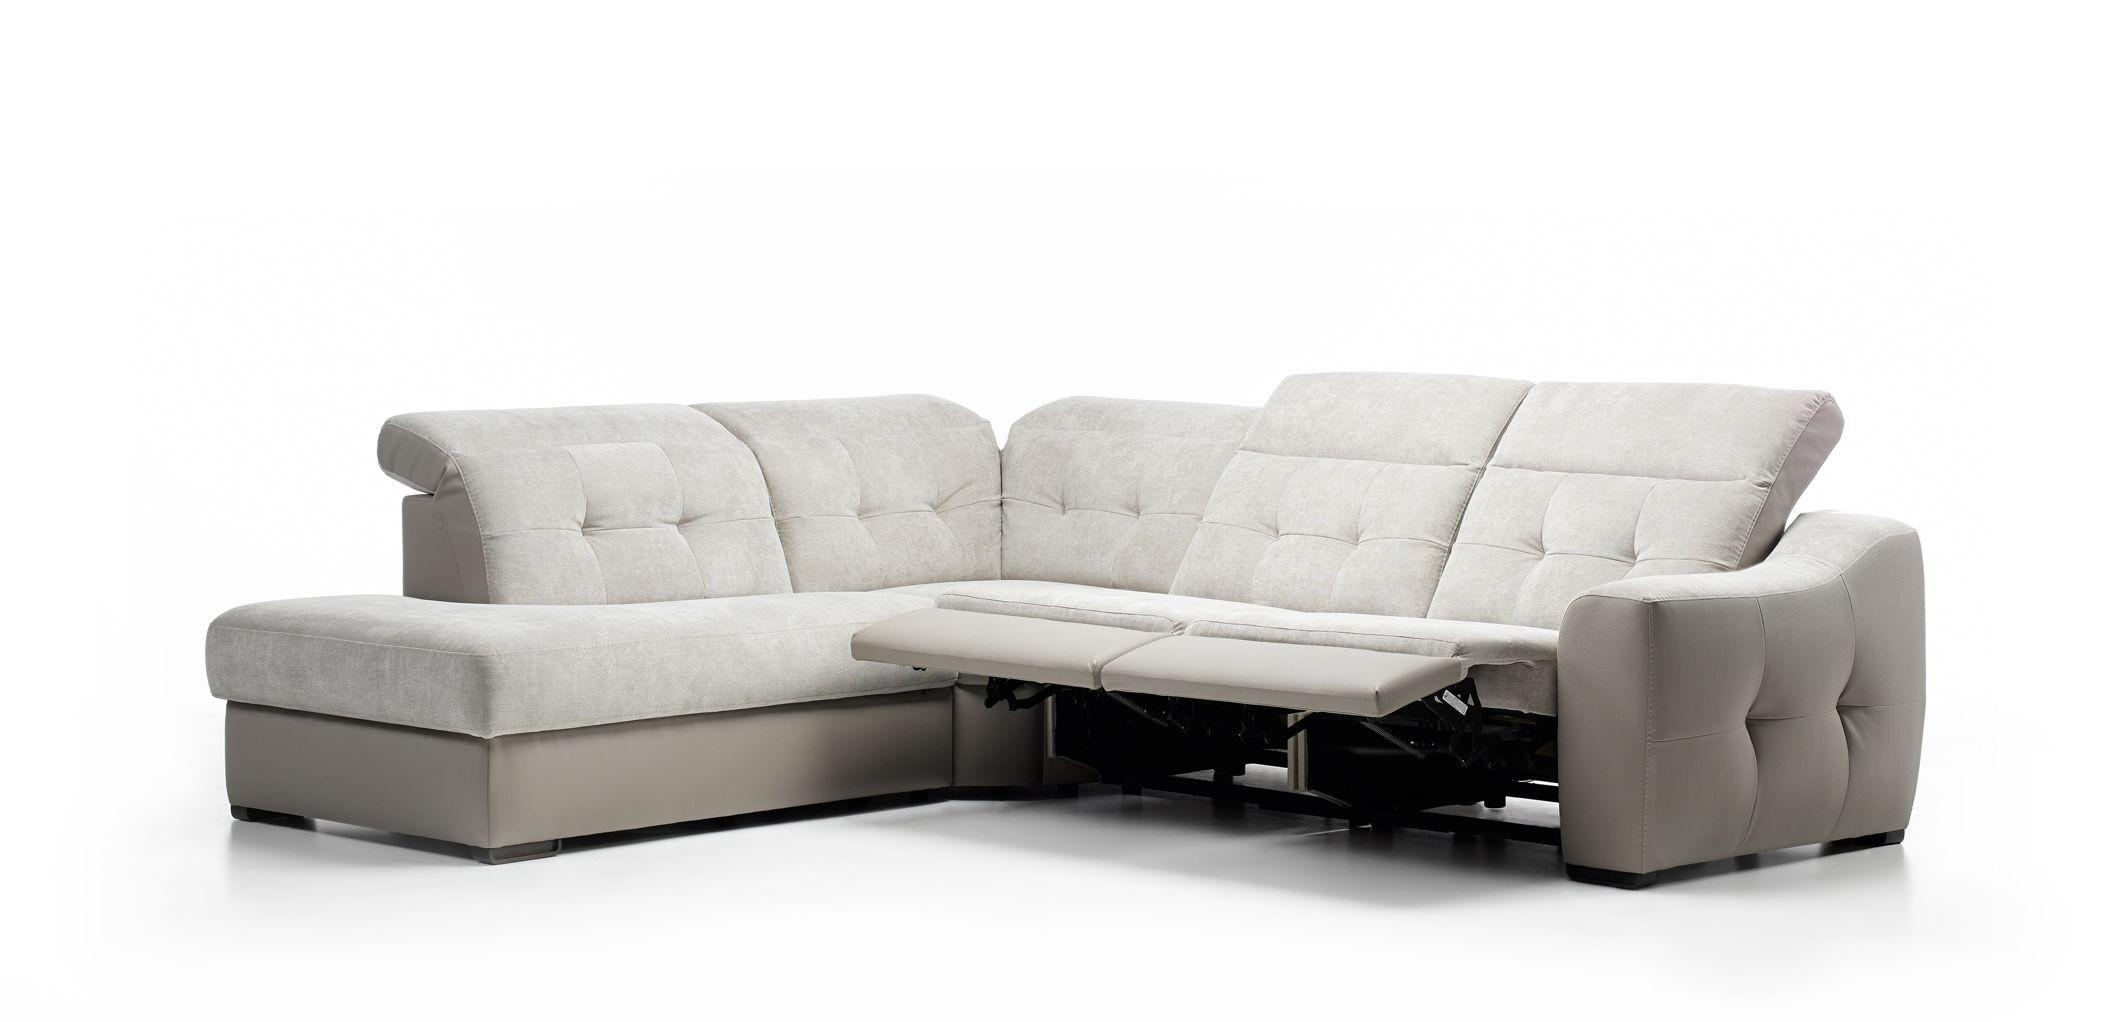 Sofas Center : Modern Recliner Sofa Reclining Dreaded Picture Pertaining To Italian Recliner Sofas (Image 20 of 20)